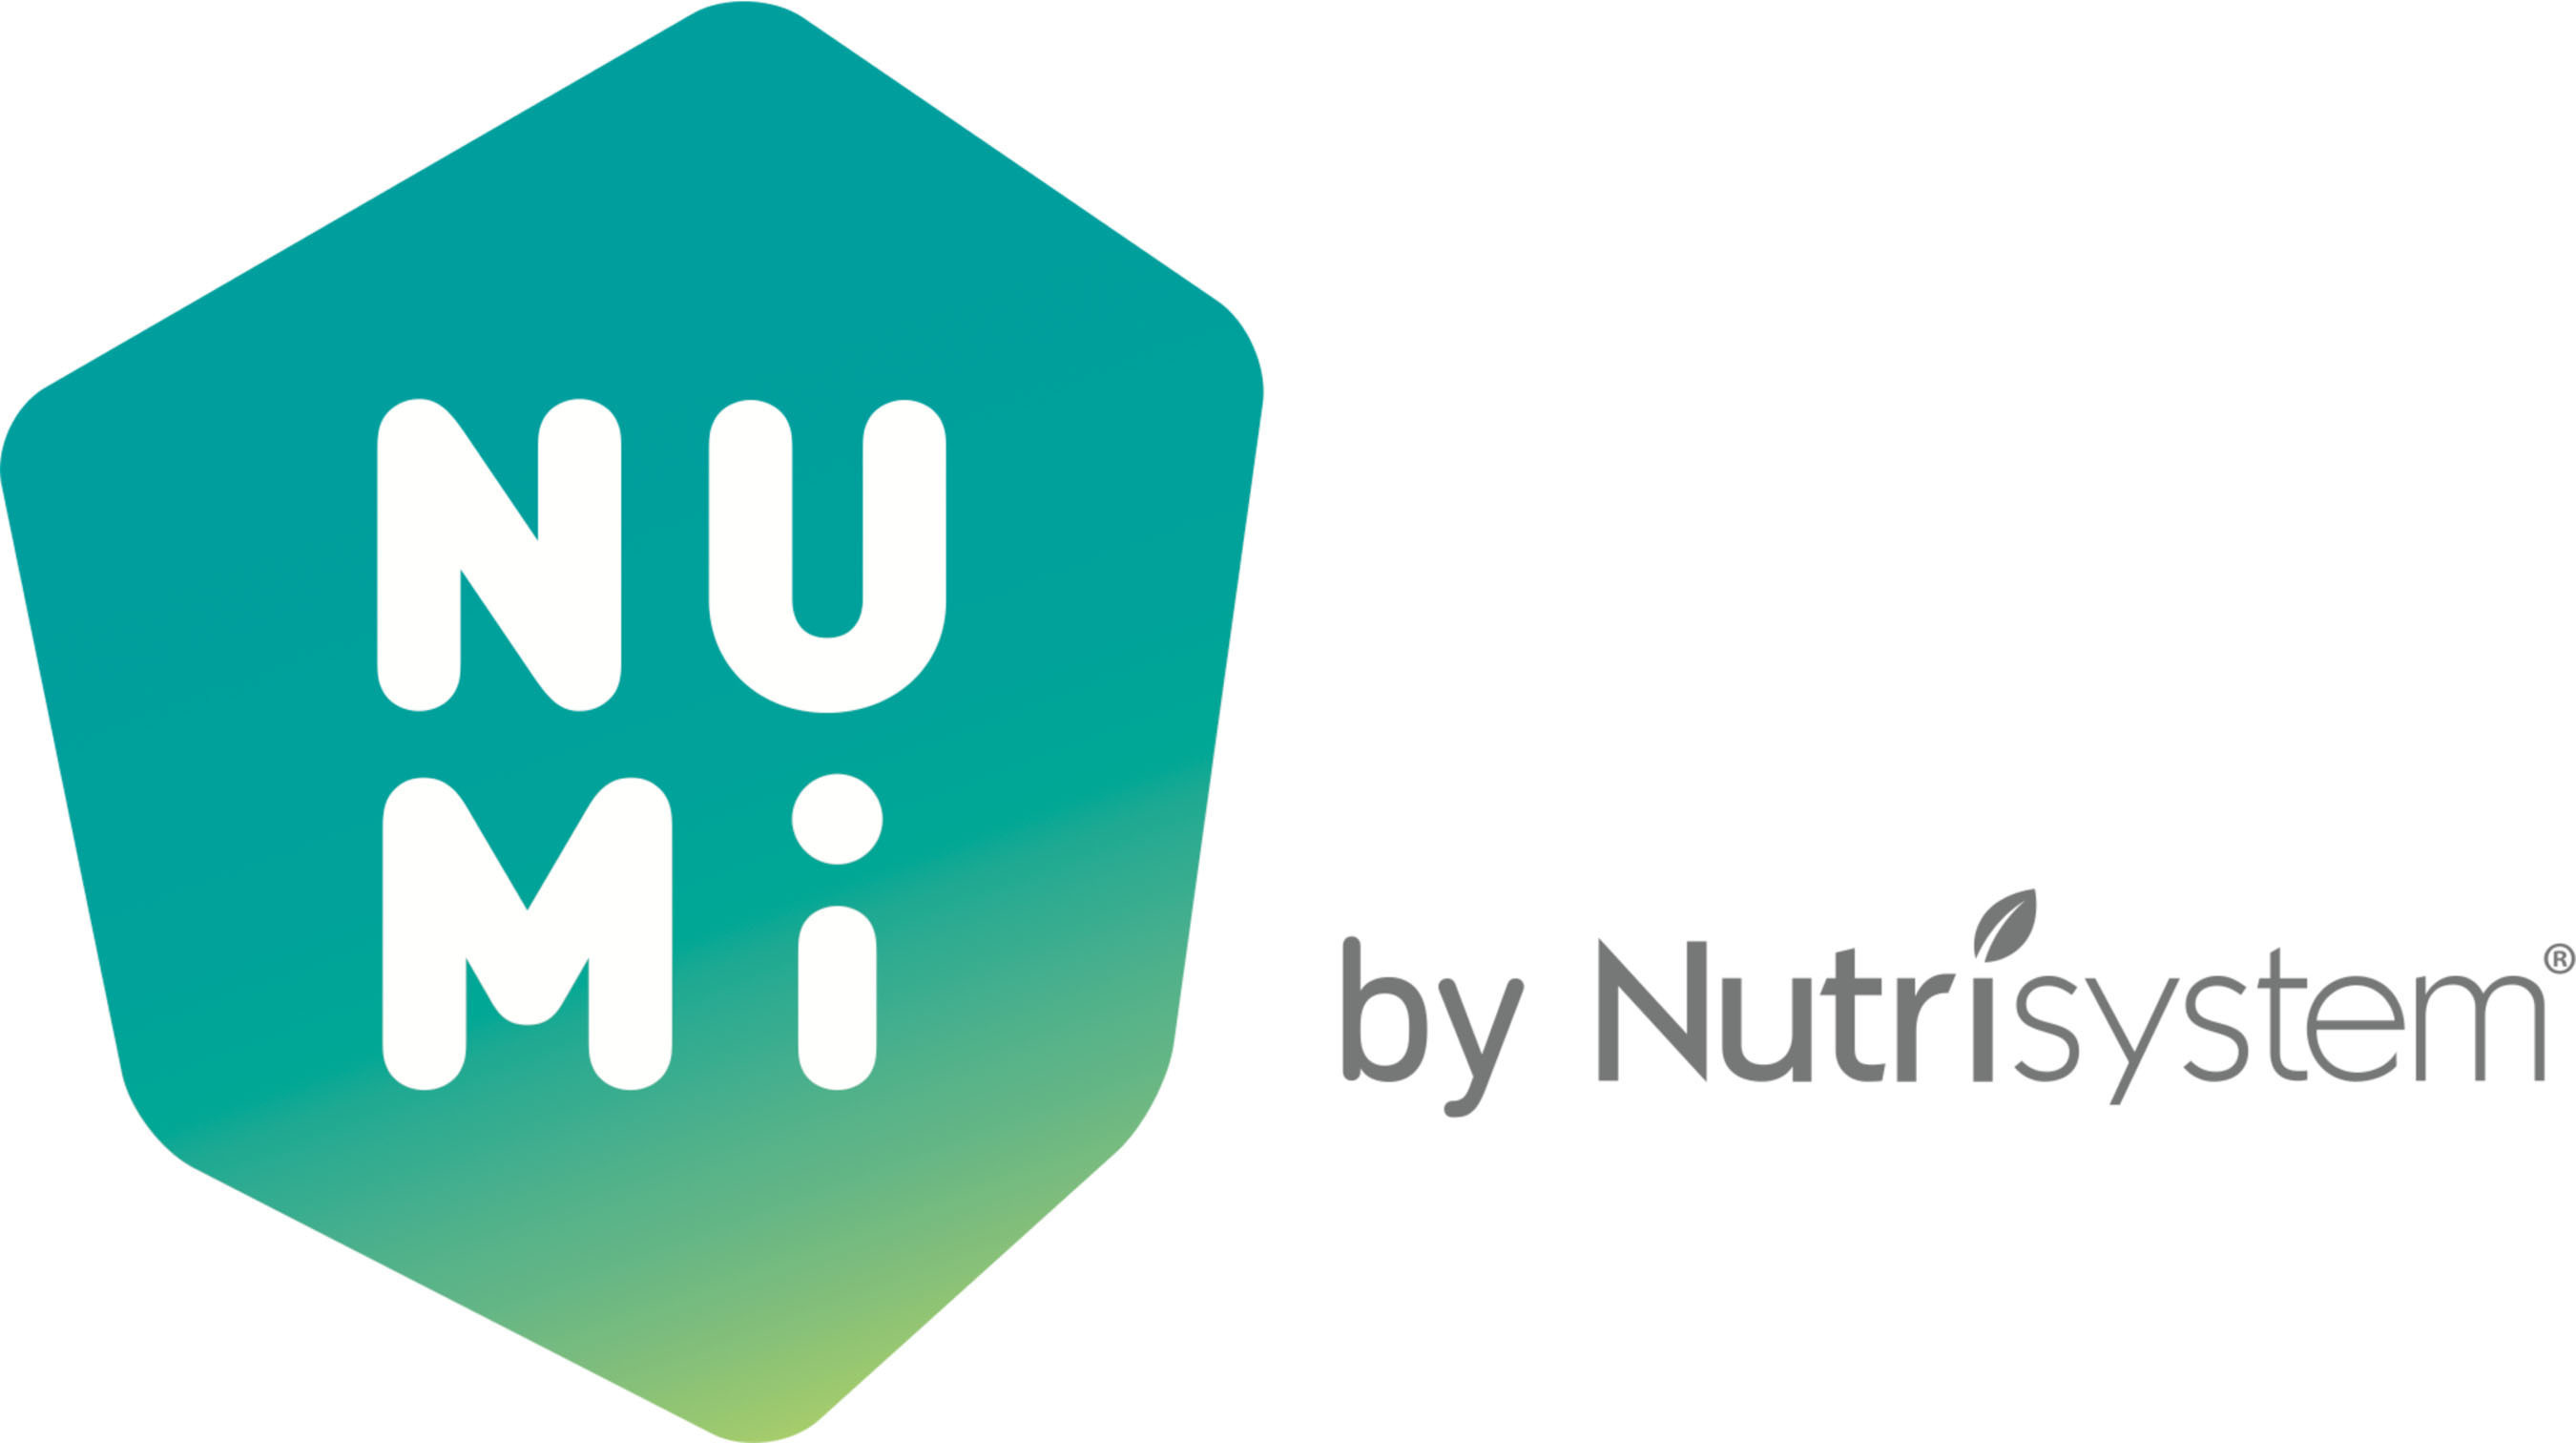 Nutrisystem announces the launch of NuMi(TM) by Nutrisystem, a flexible, new digital weight loss system for the do-it-yourself dieter as well as dieters transitioning from a structured meal plan or looking for a post-diet weight maintenance program. NuMi offers an interactive solution for the nutritional, emotional and physical components of a weight loss journey.